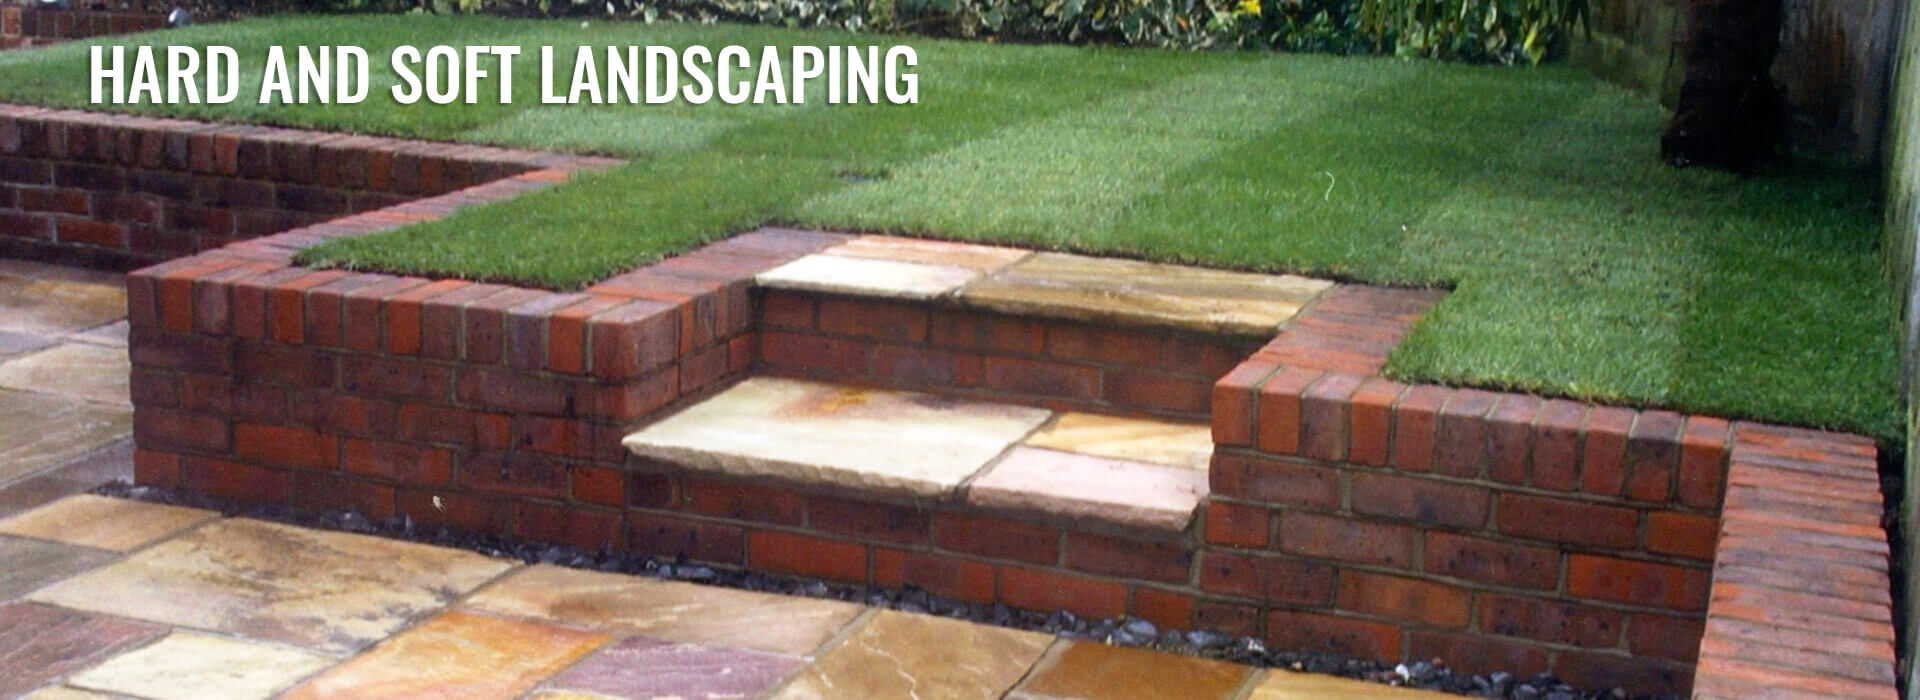 hard and soft landscaping ruxley landscapes bexley bromley kent